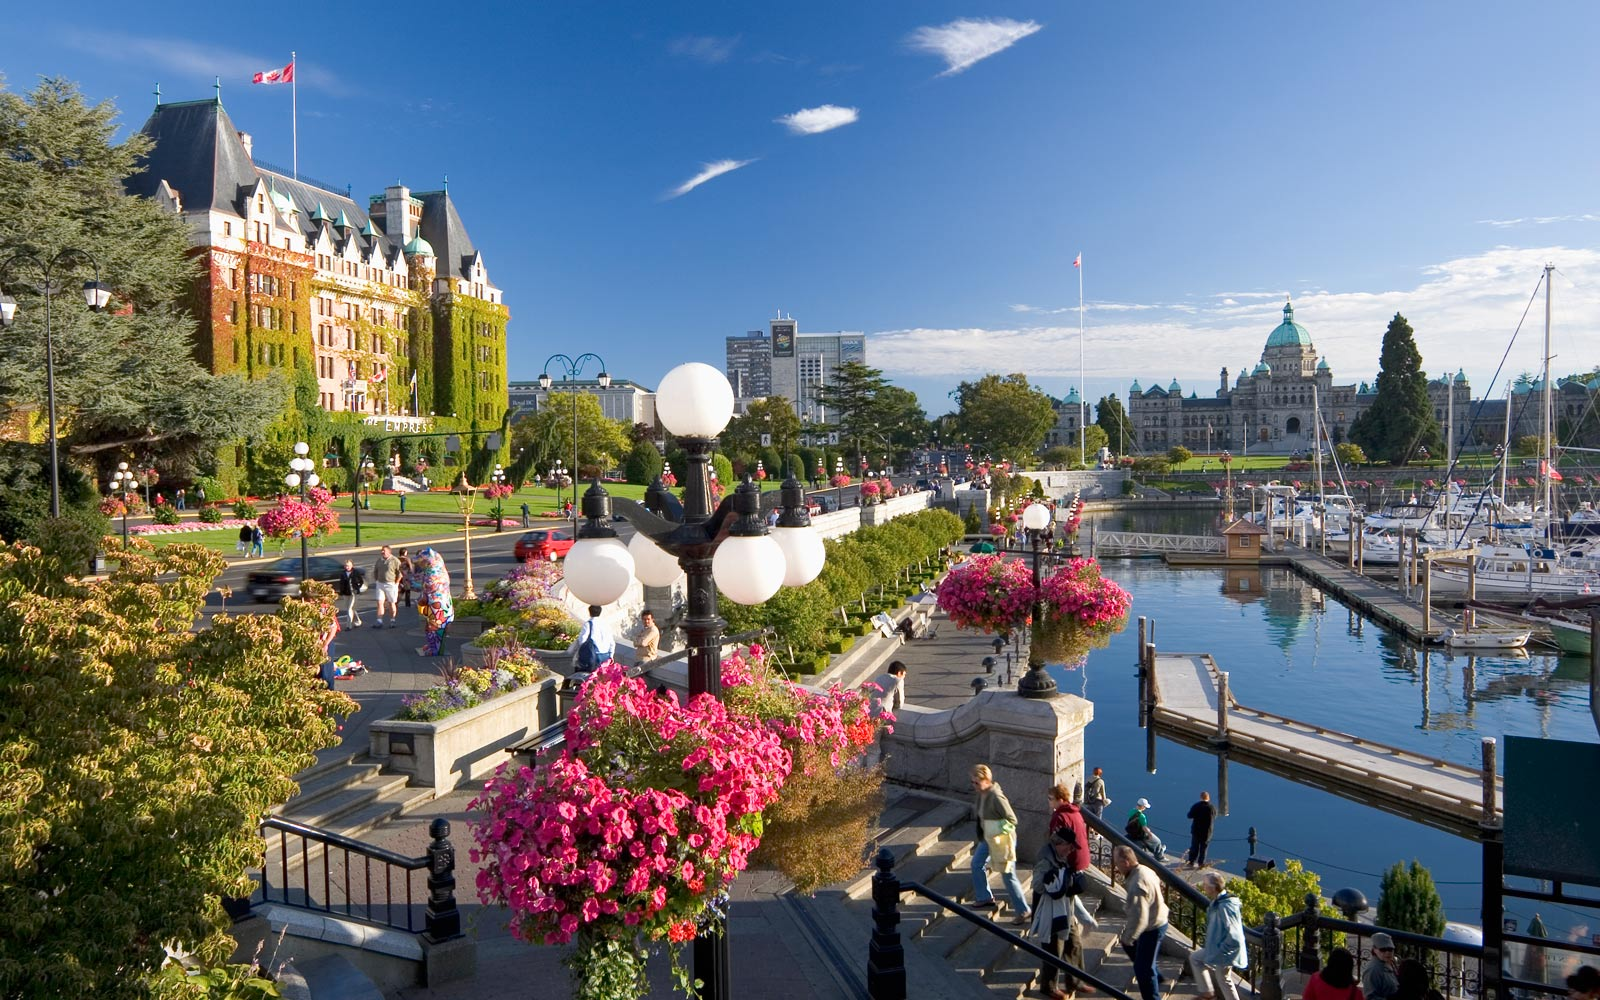 Explore the City of Victoria in 360 Degrees